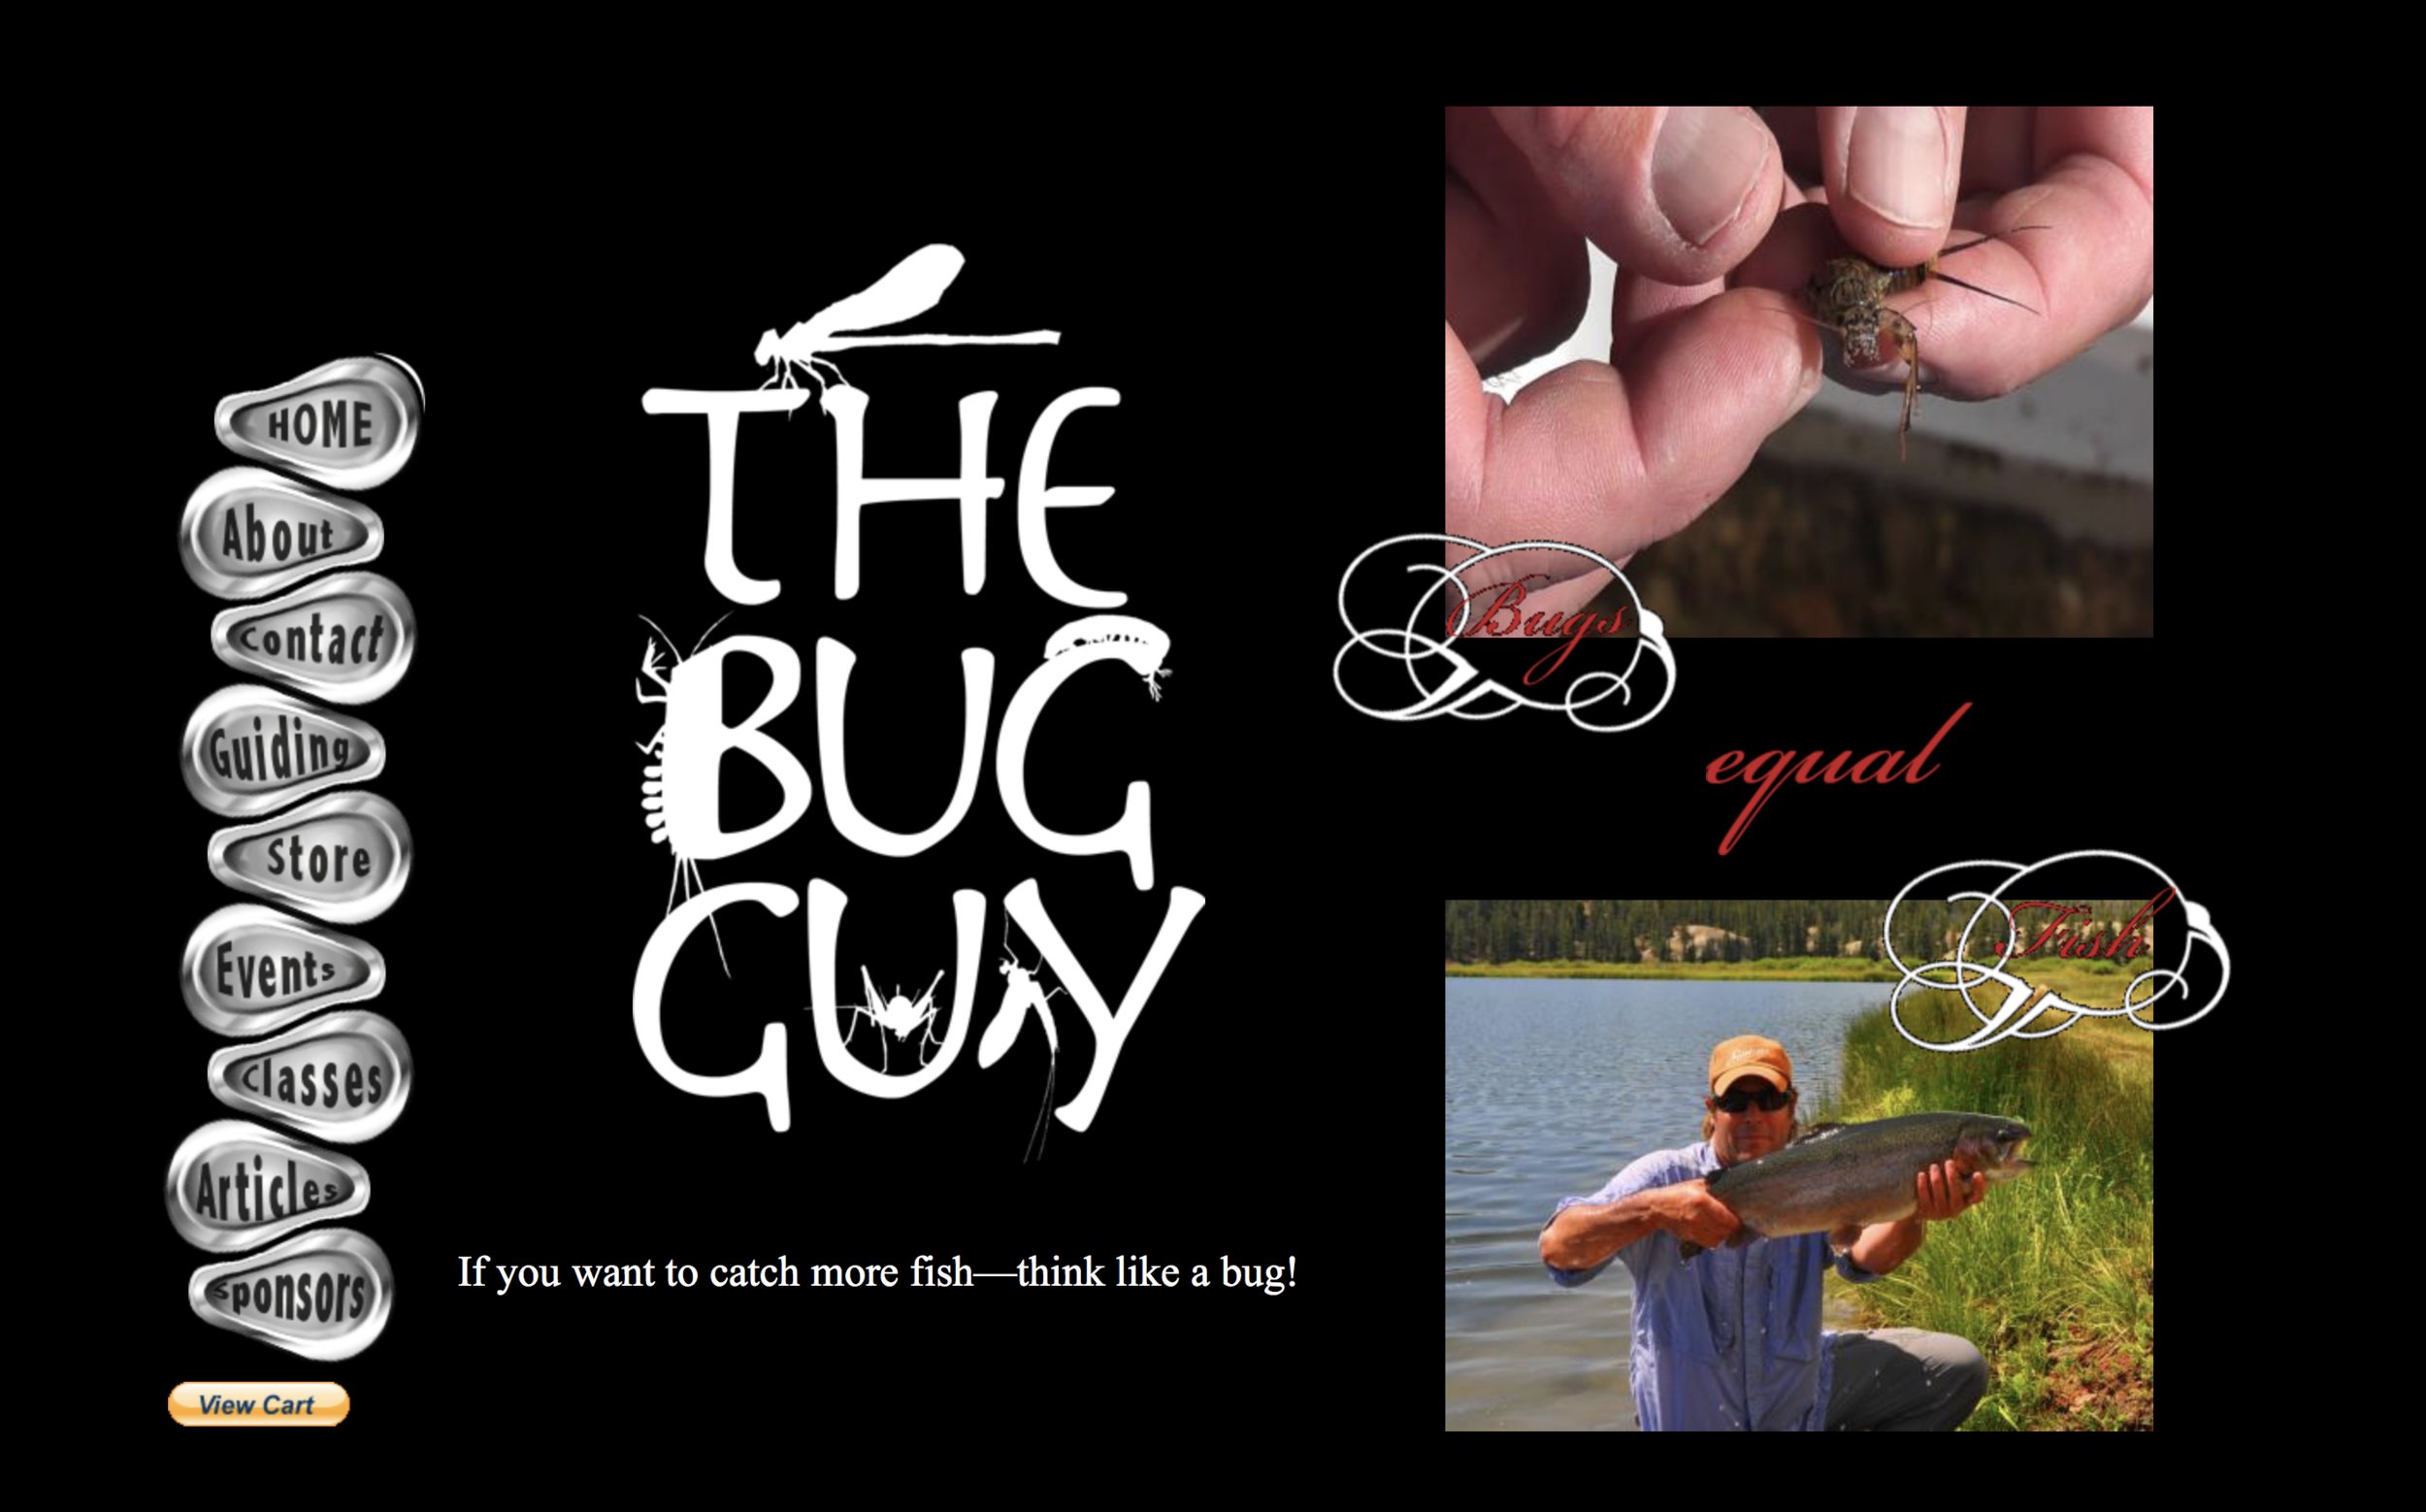 bug guy web site .png